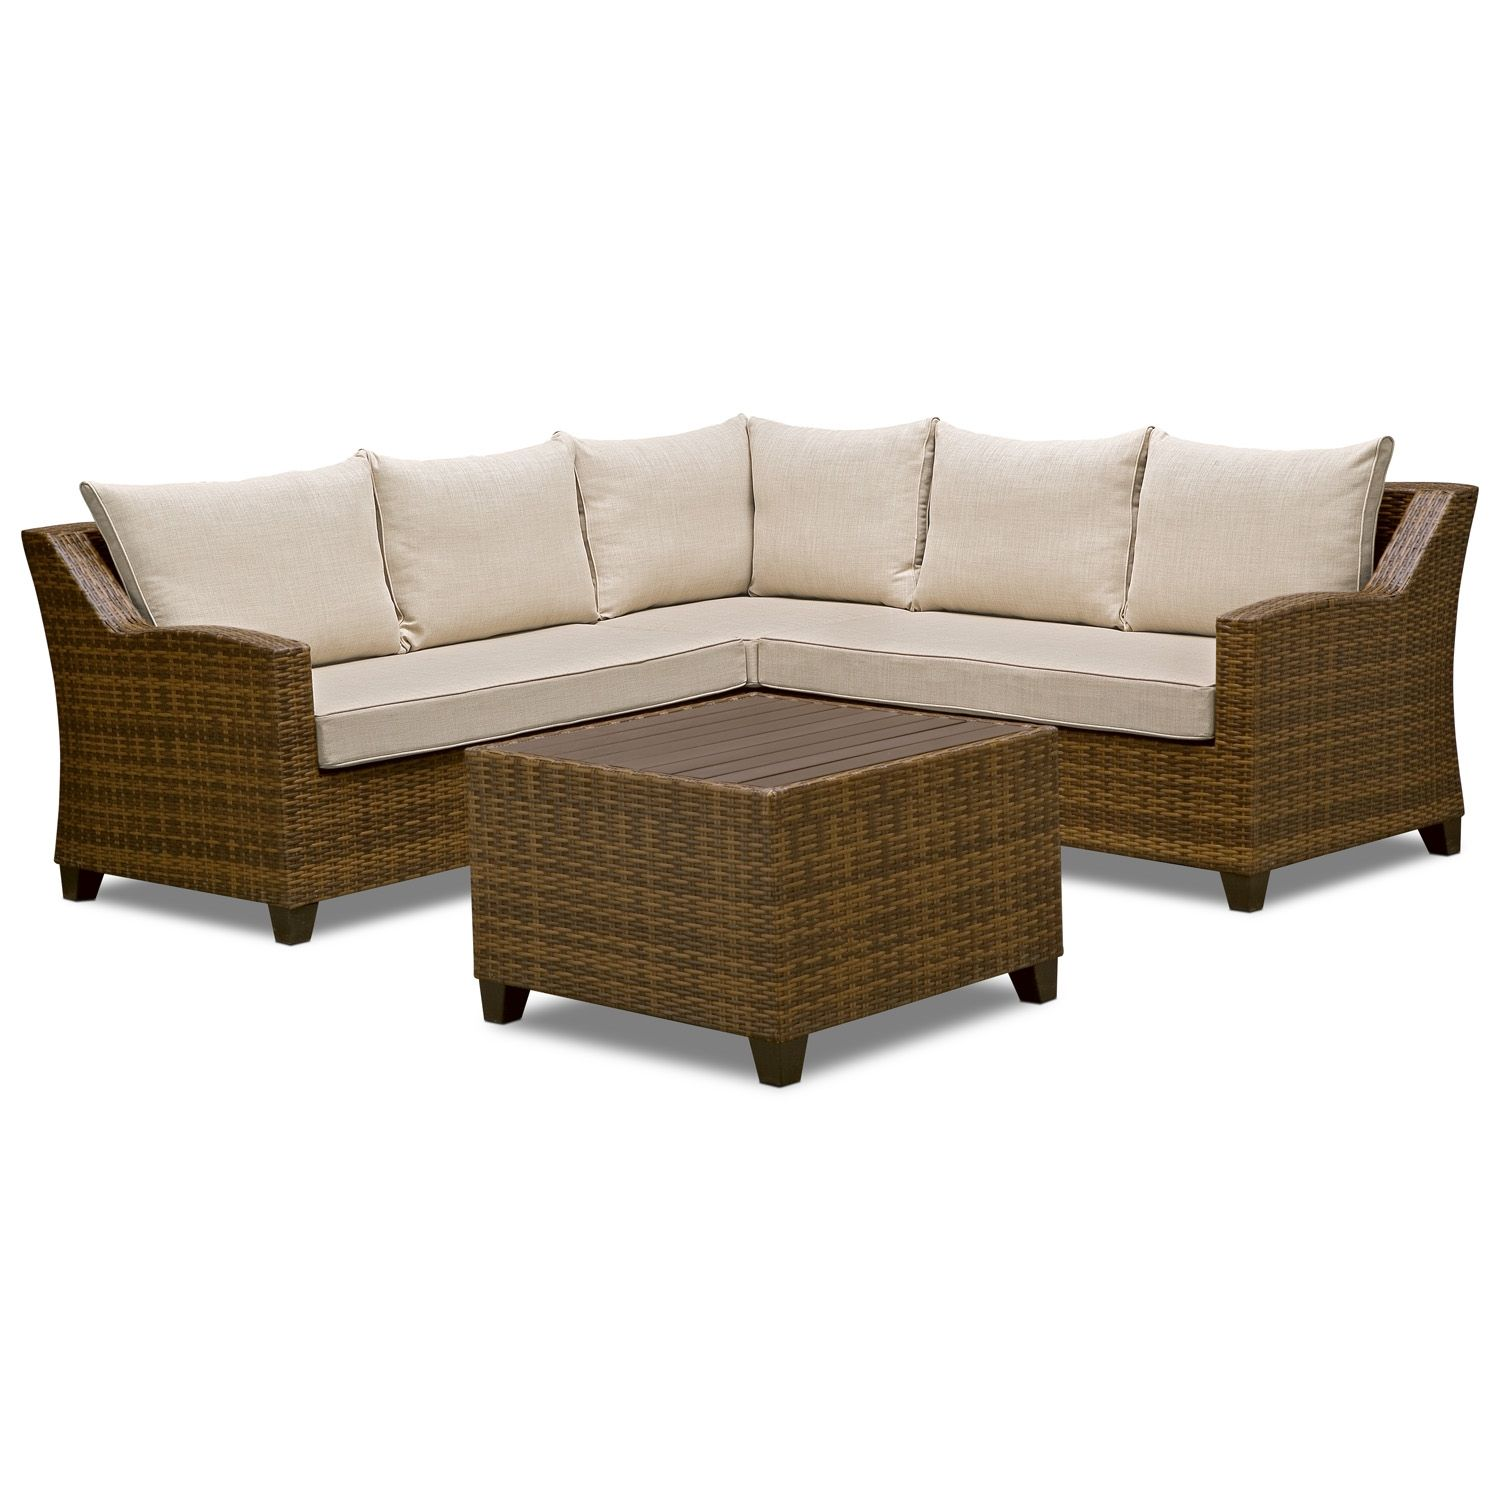 Woodfield Outdoor Furniture 3 Pc. Patio Sectional And Cocktail Table   Value  City Furniture